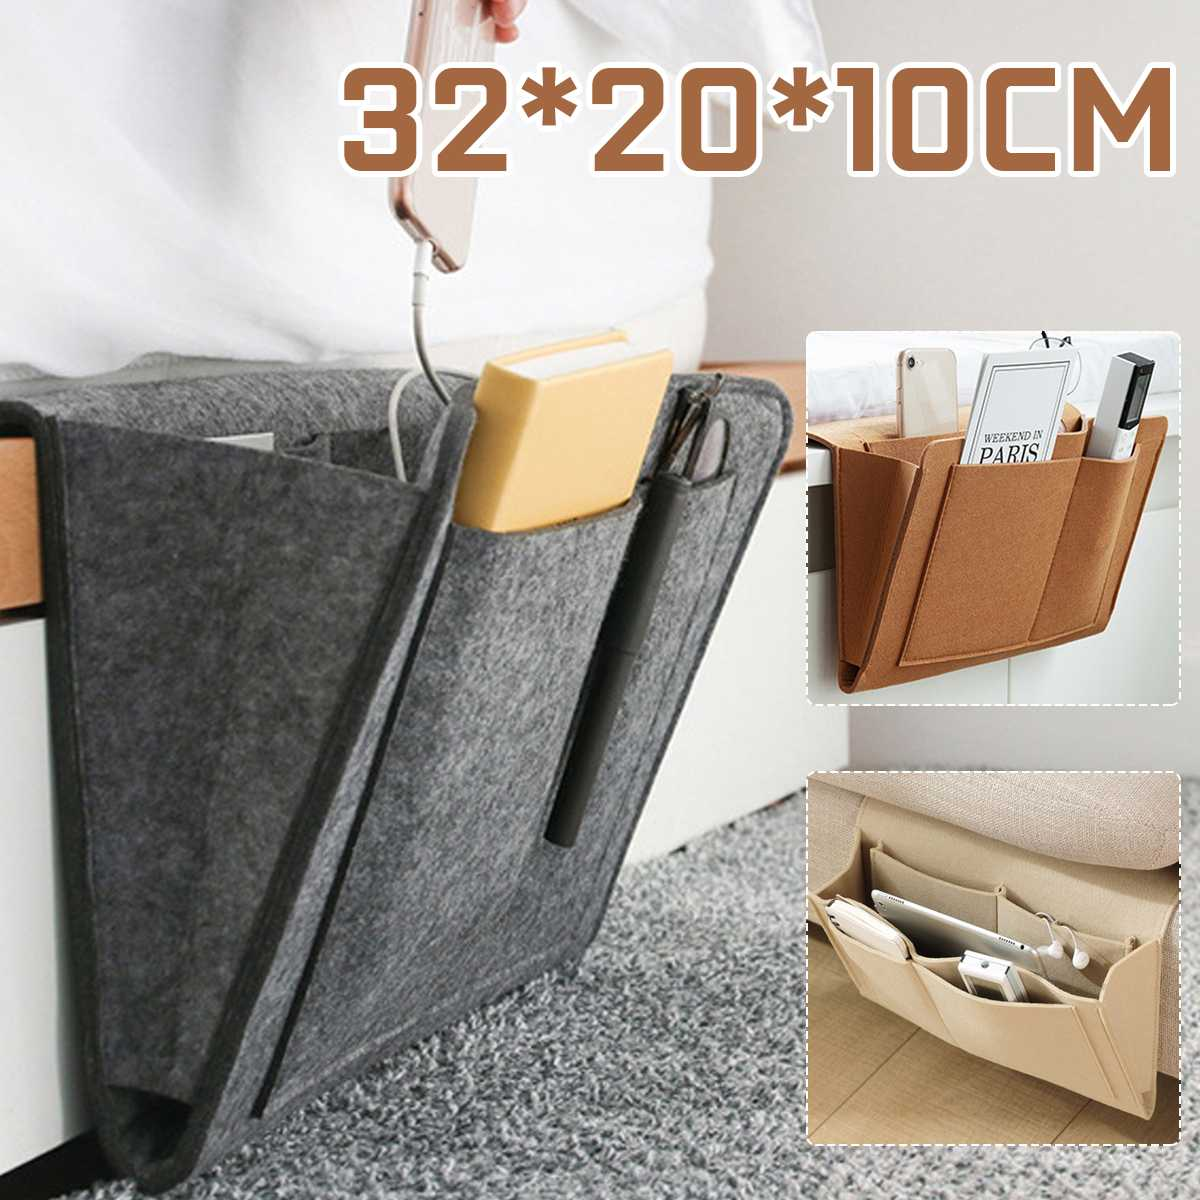 Felt Bedside Storage Organizer Bed Desk Bag <font><b>Sofa</b></font> TV <font><b>Remote</b></font> Control Hanging Books Phones Storage Organizer Bed Holder <font><b>Pockets</b></font> image